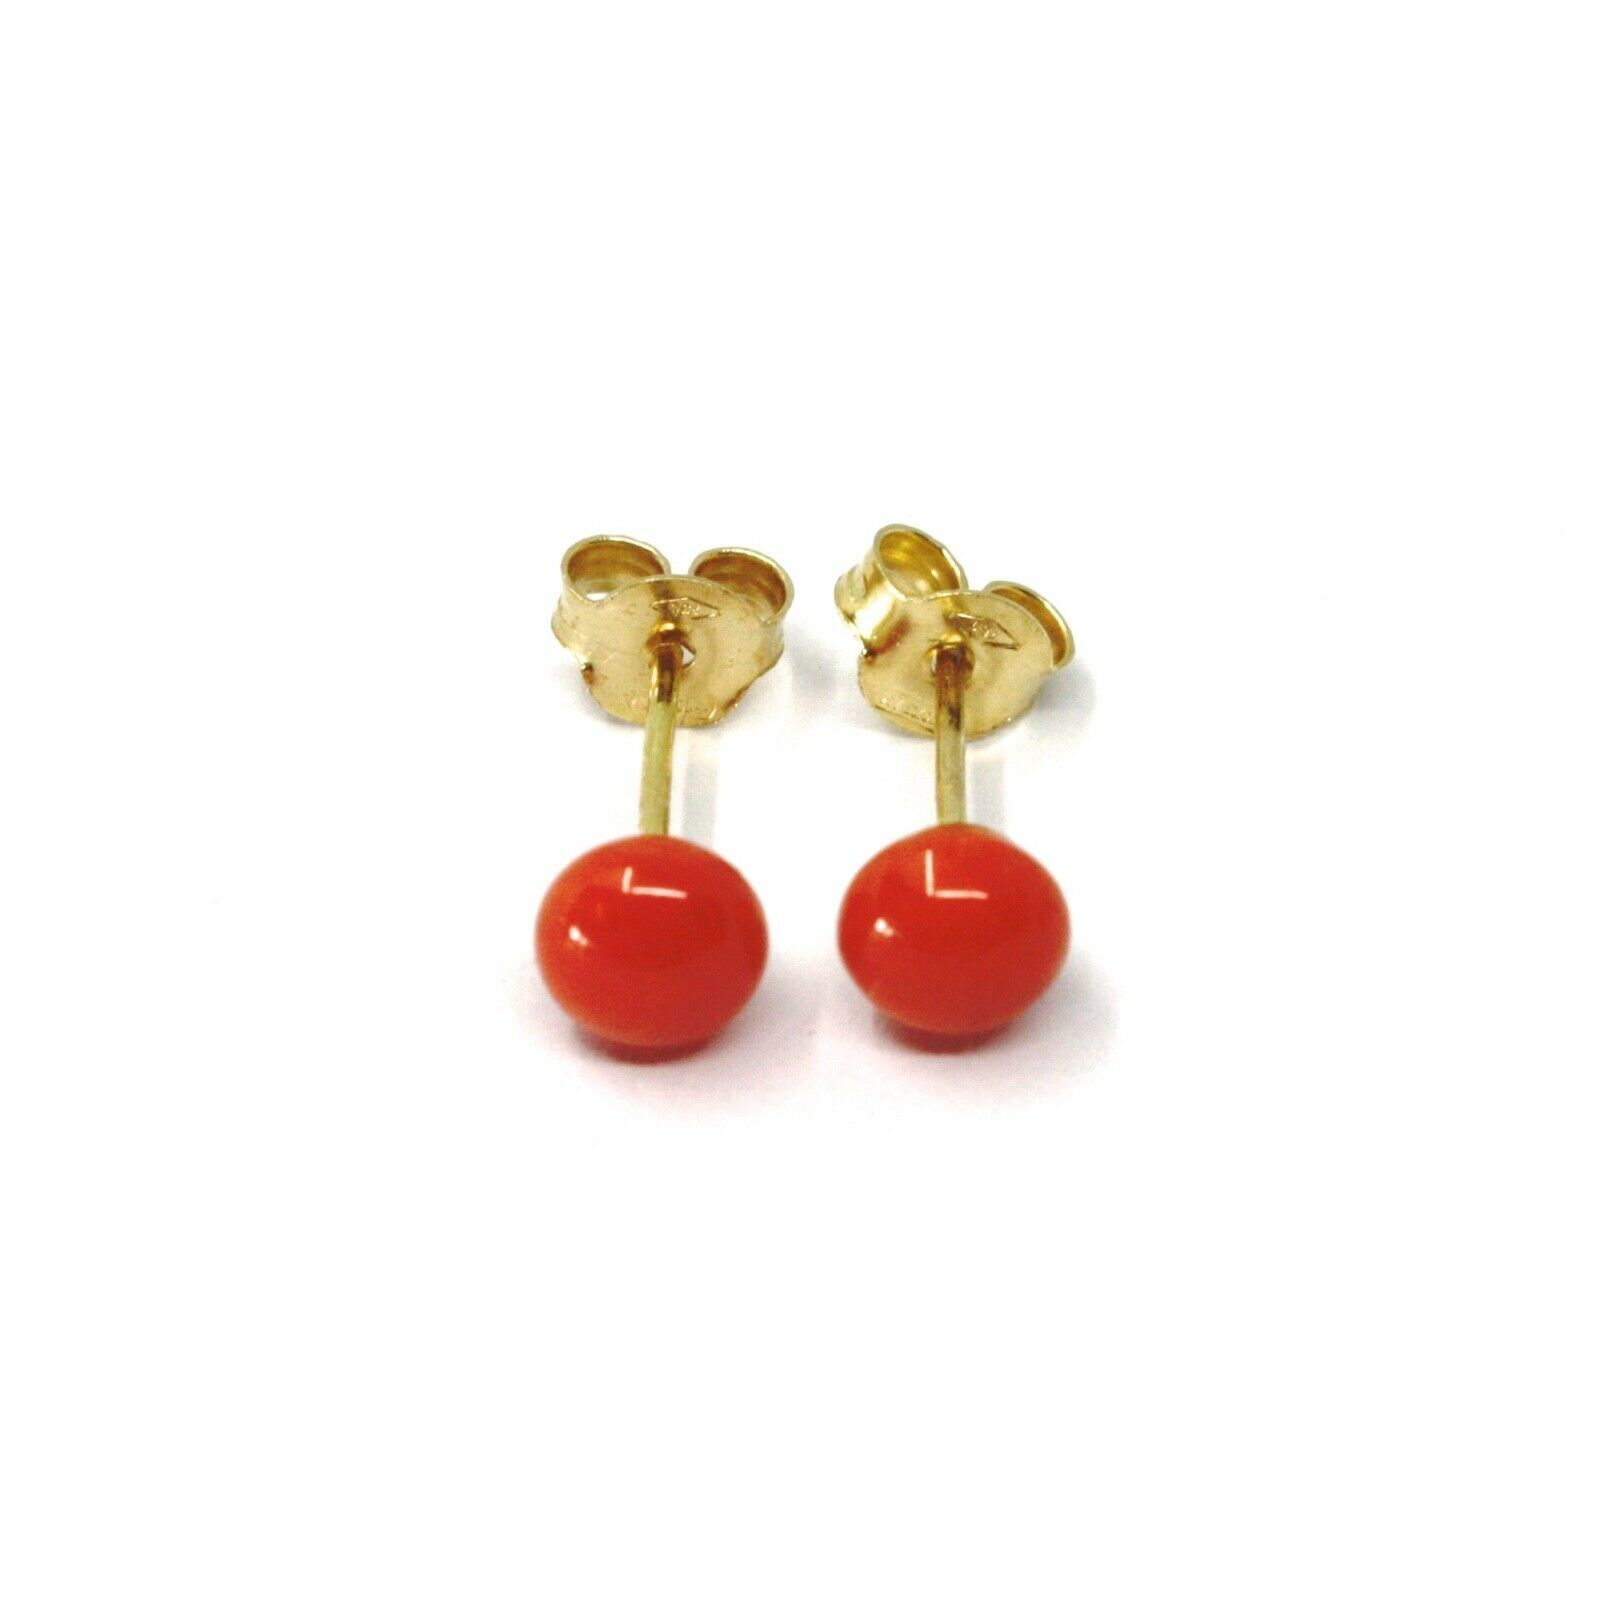 18K YELLOW GOLD HALF SPHERE RED CORAL BUTTON EARRINGS, MINI 4 MM, 0.16 INCHES